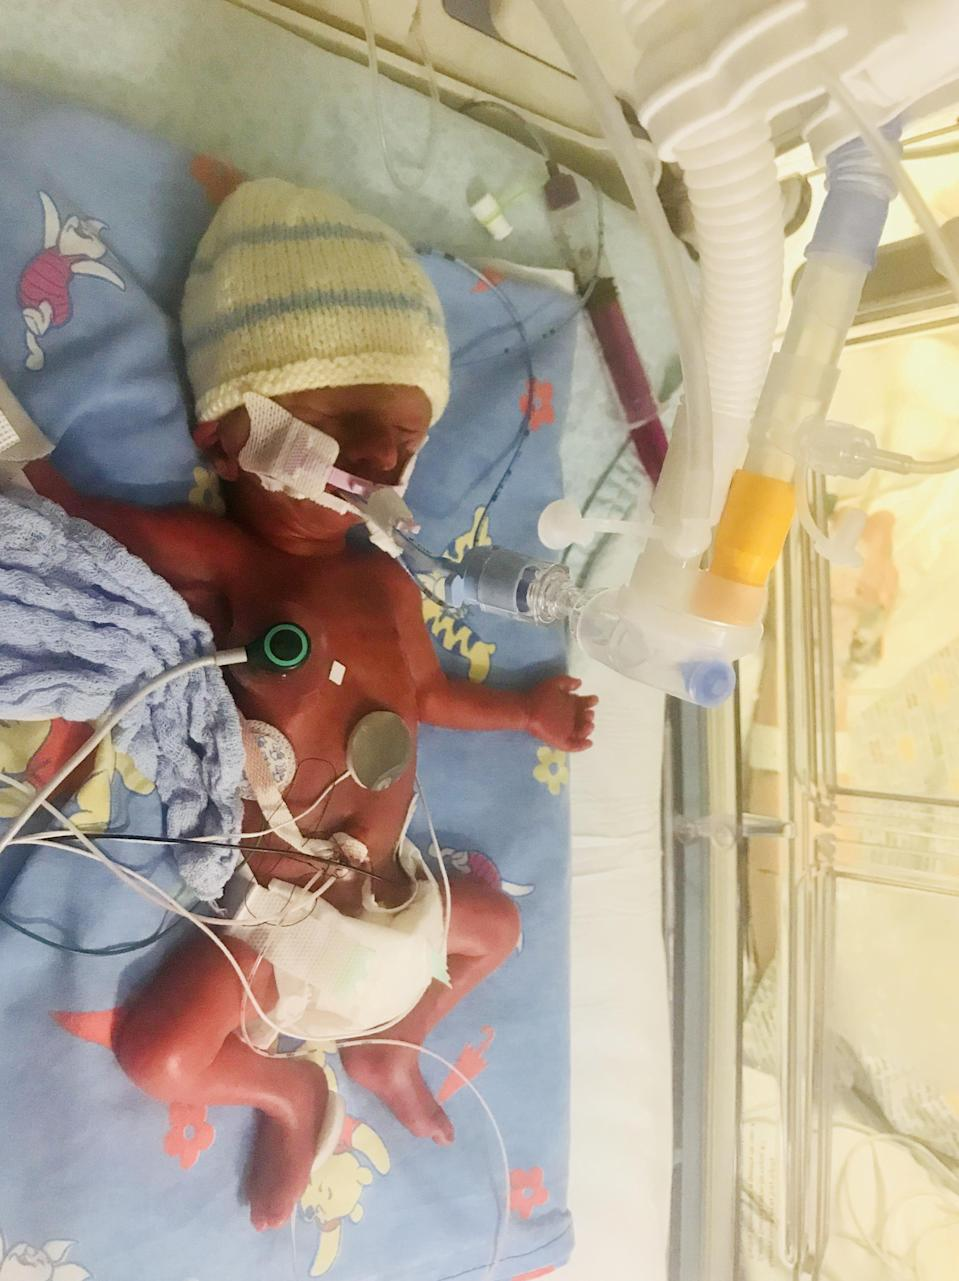 Marleigh was born weighing just 1lb 13oz when he was born [Photo: SWNS]